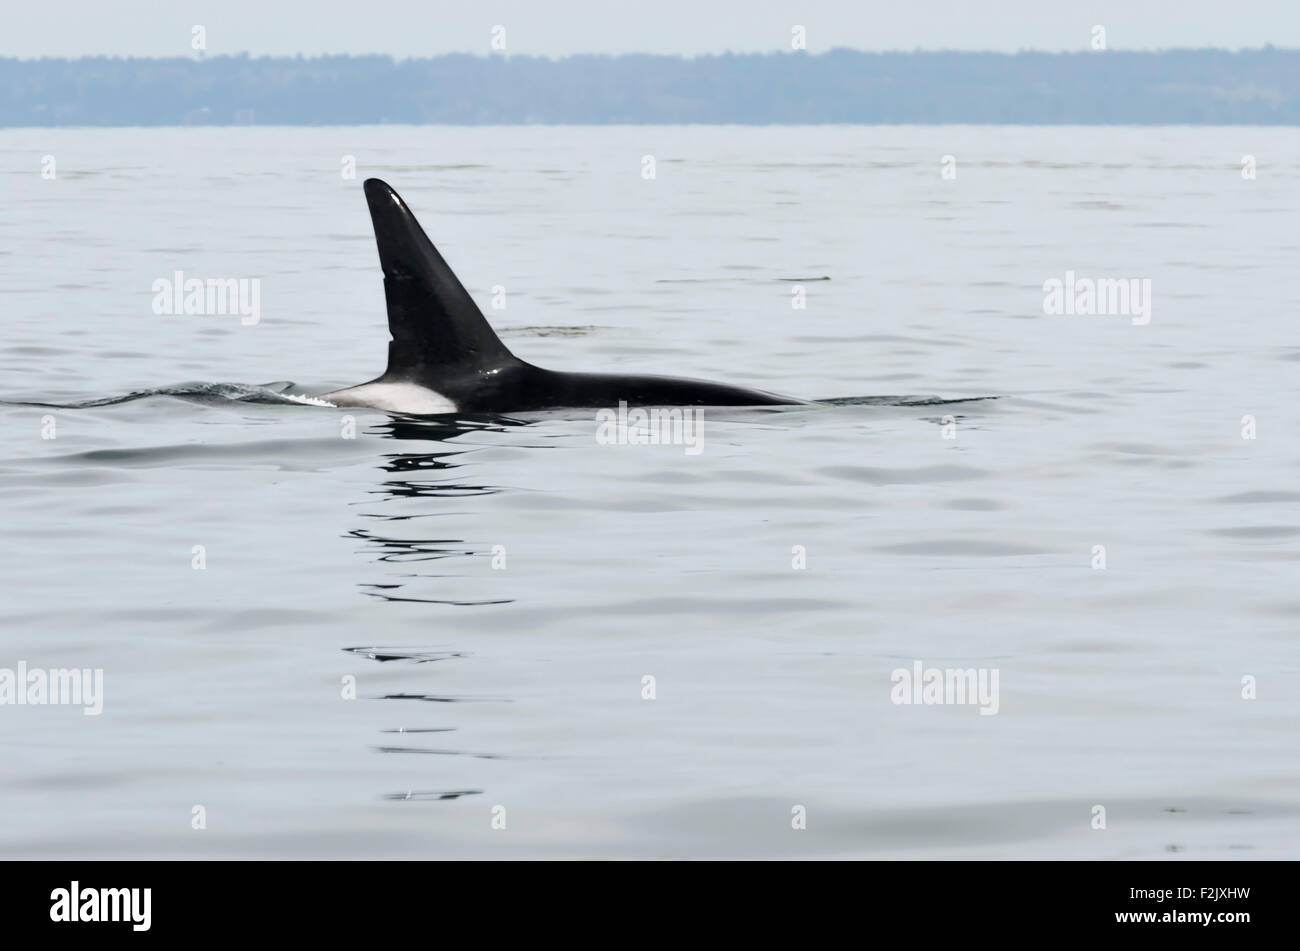 male Transient or Bigg's killer whale, Orcinus orca, British Columbia, Canada, Pacific - Stock Image